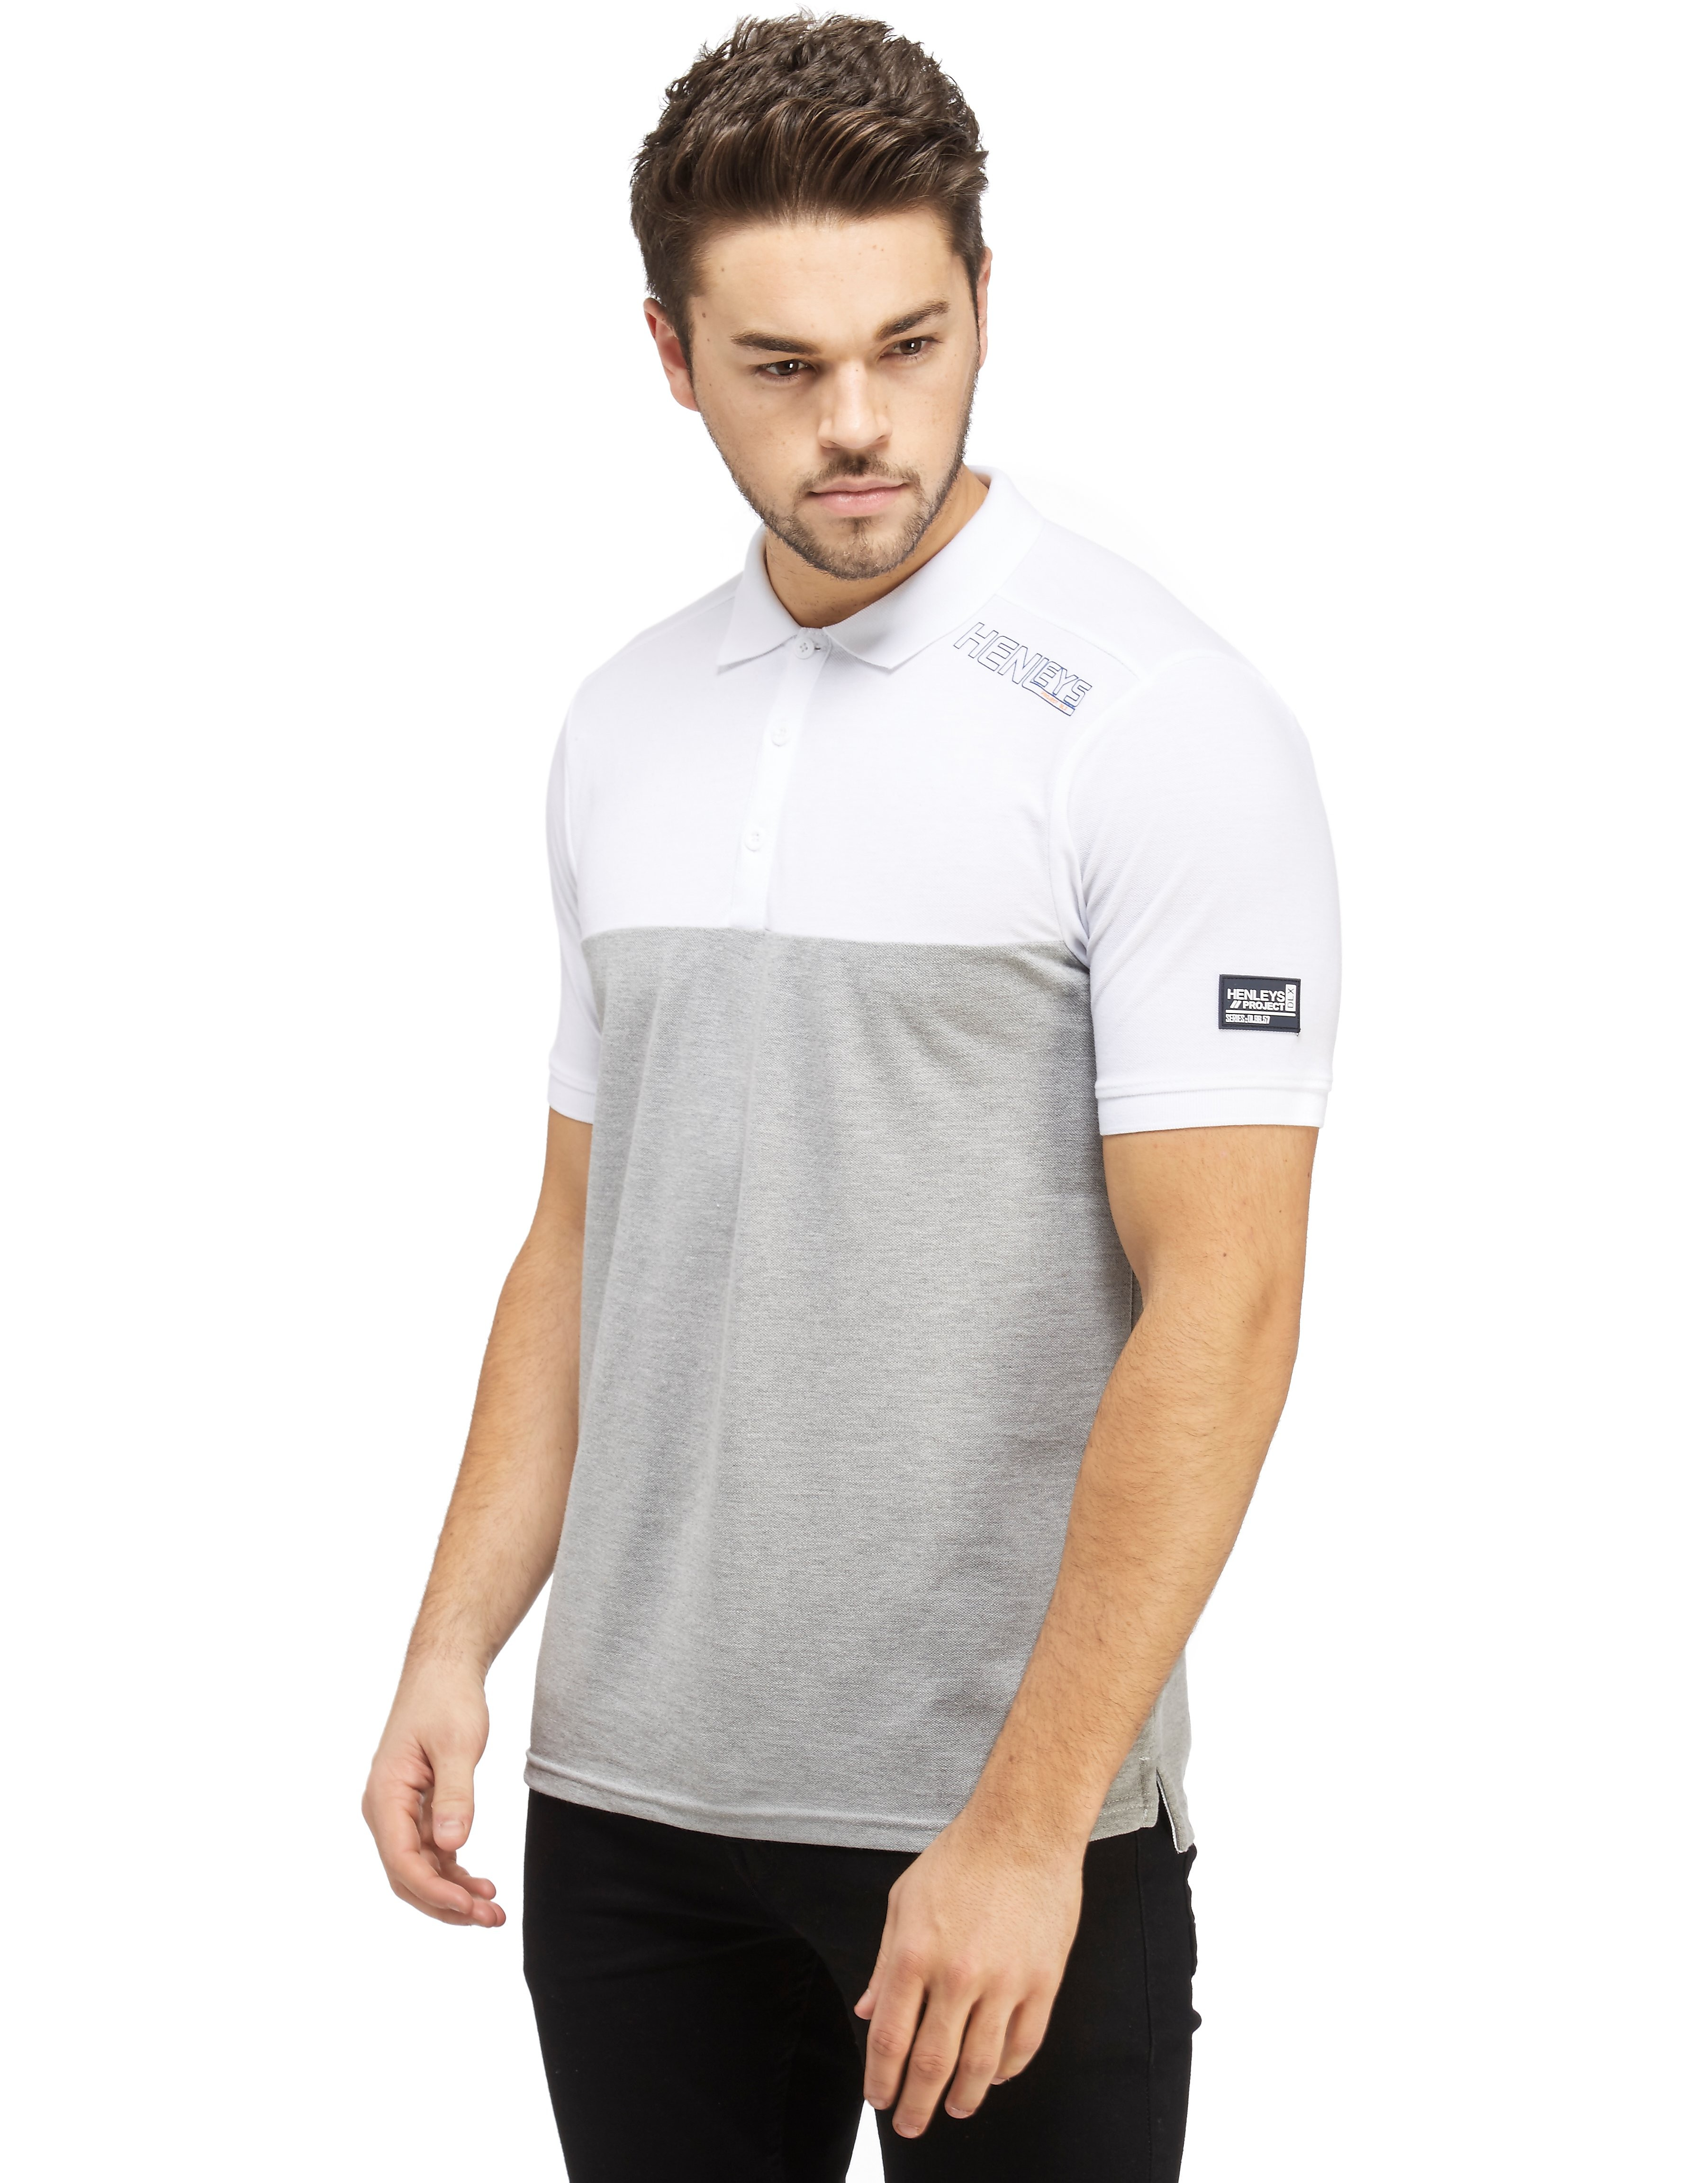 Henleys Euston Polo Shirt